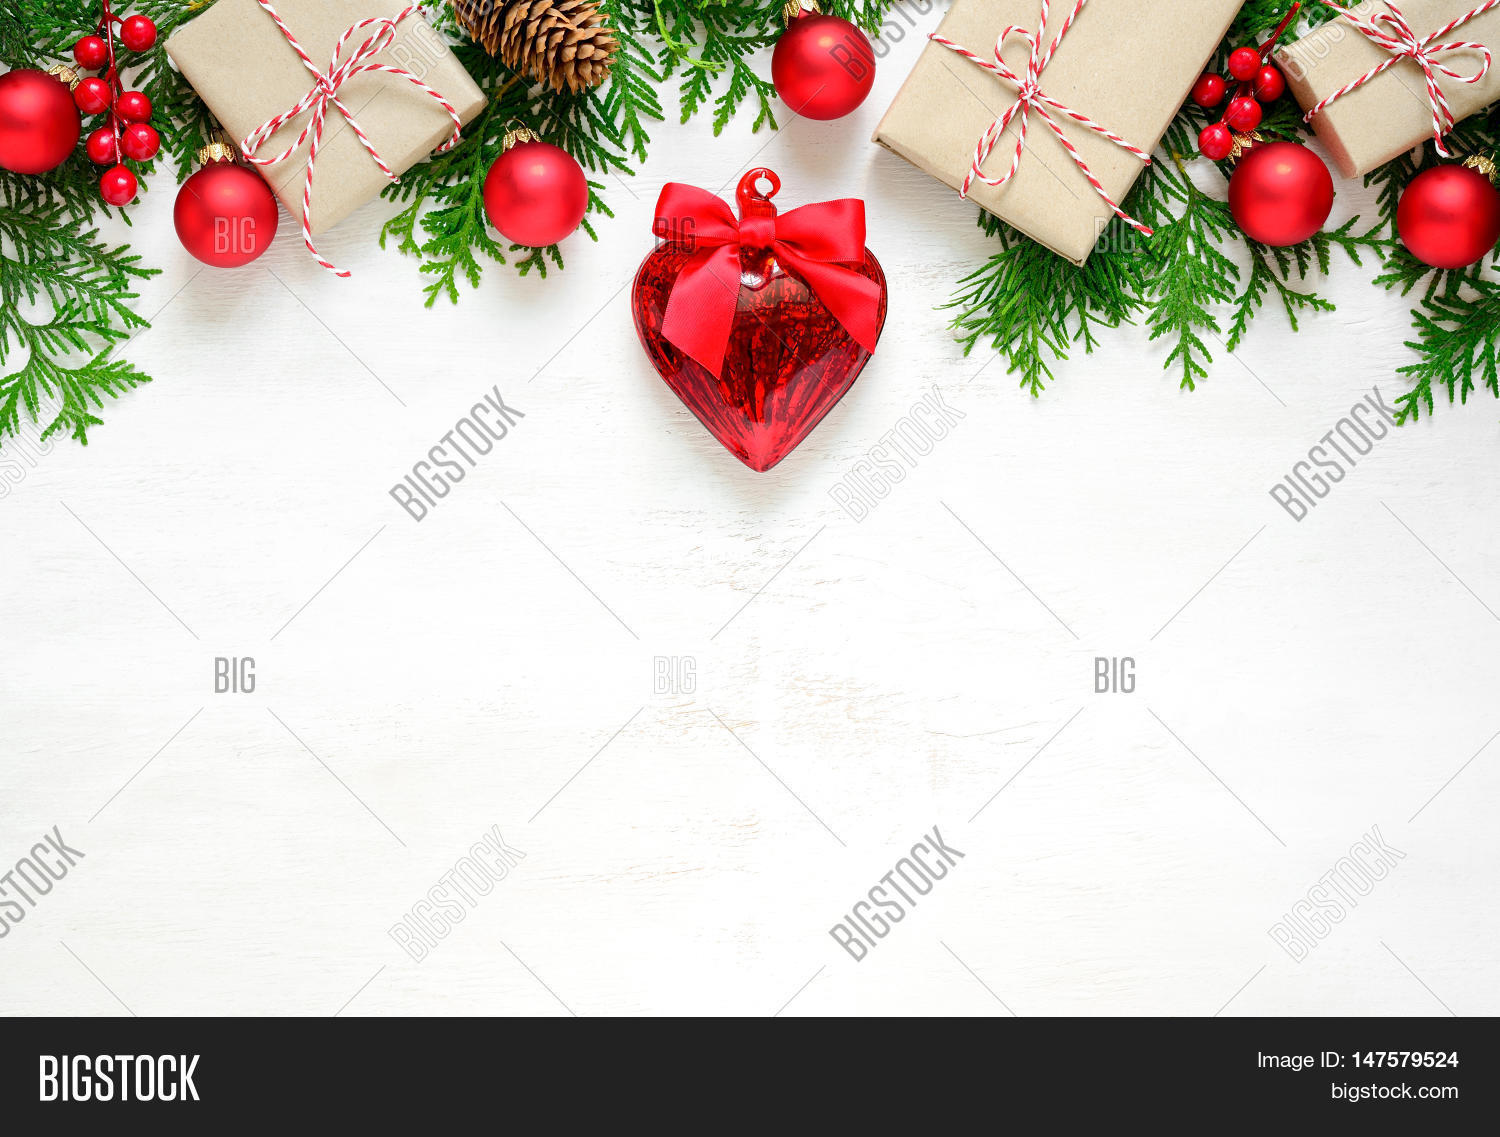 xmas or new year background holiday plain composition made of christmas decorations and fir twigs on